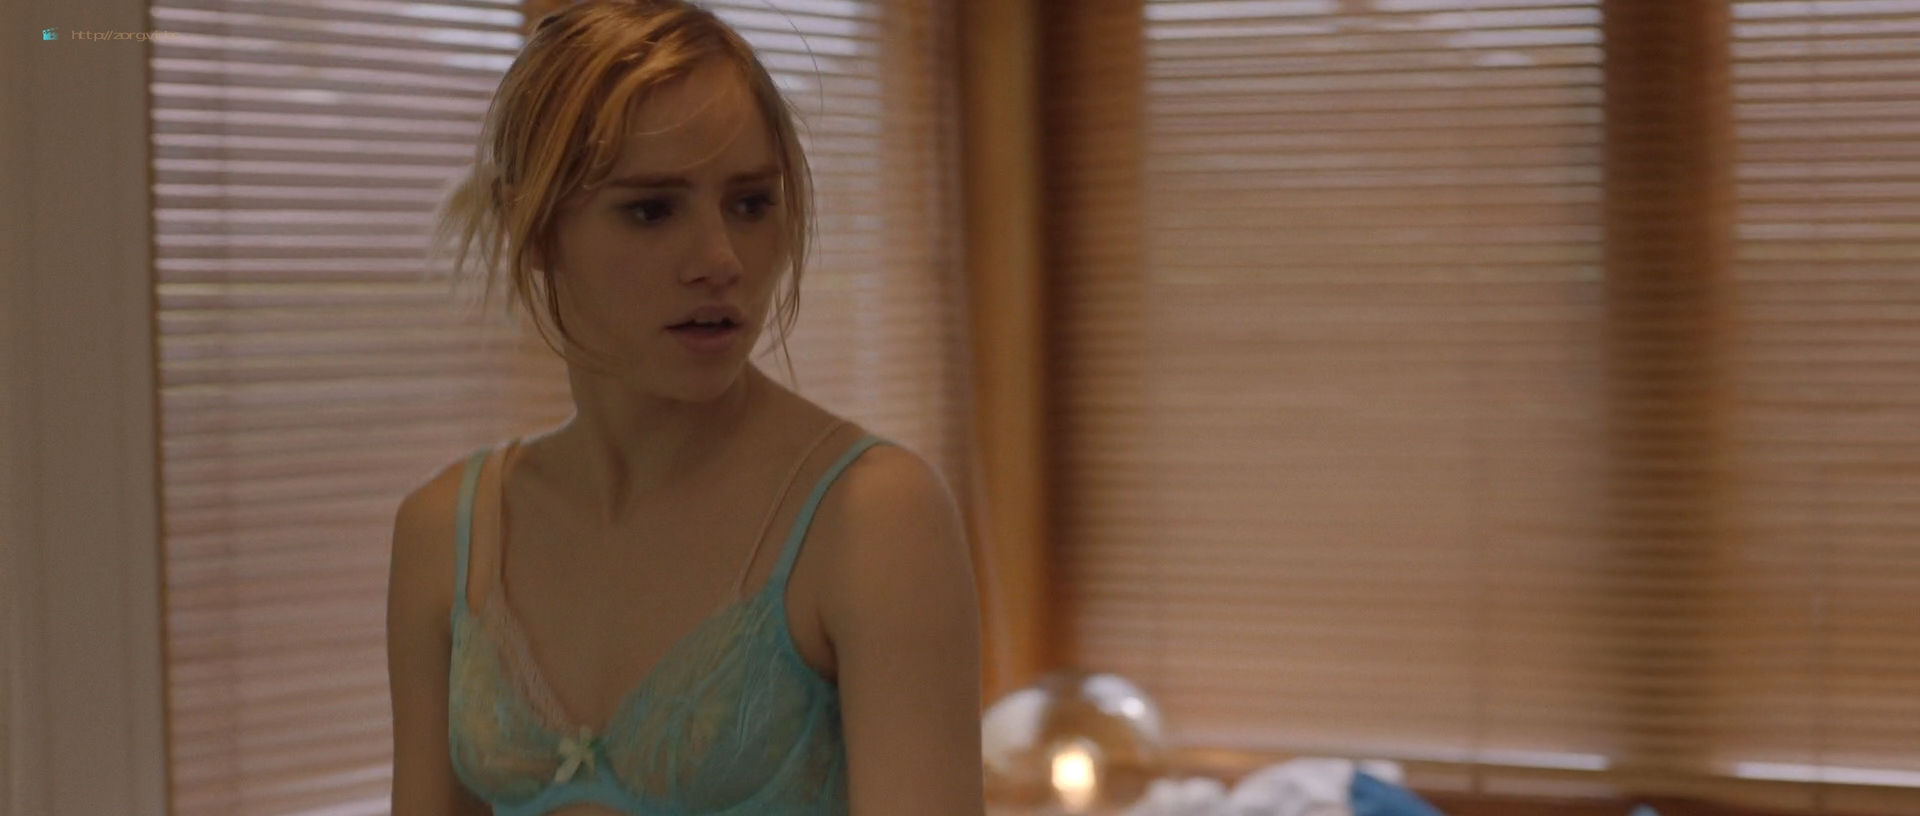 Suki Waterhouse hot and Jennifer Grey sexy - Bittersweet Symphony (2019) HD 1080p Web (7)